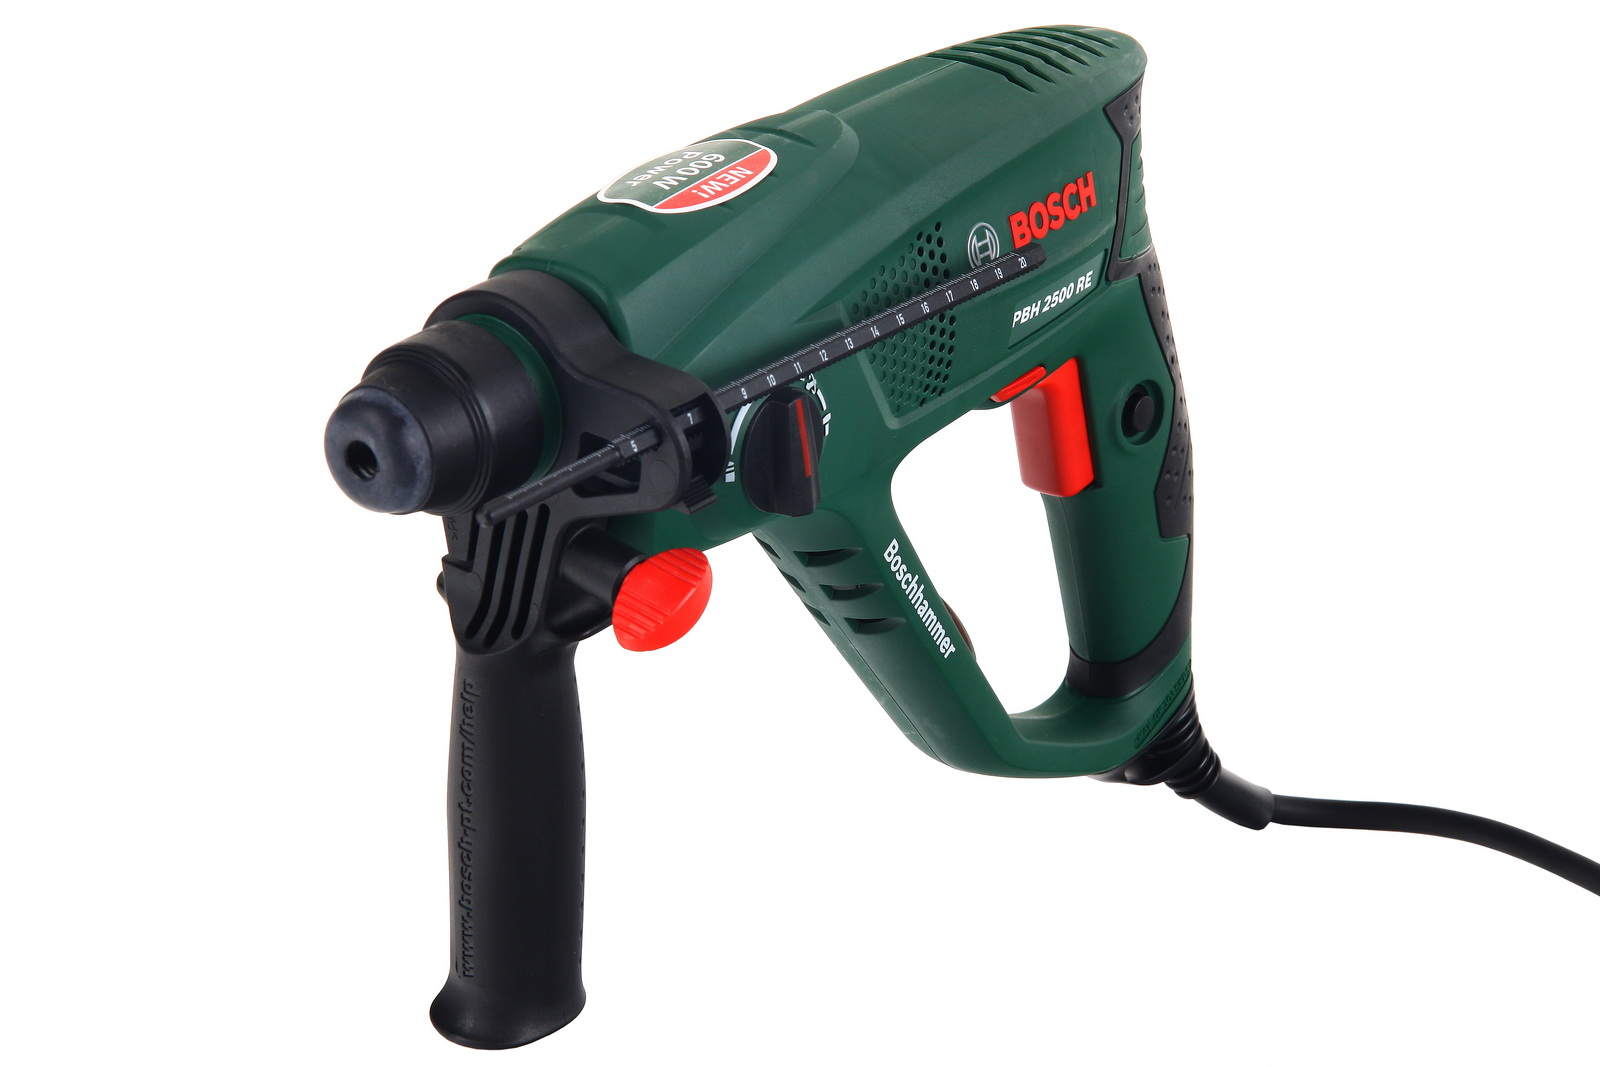 Перфоратор Bosch Pbh 2500 re (0.603.344.421) перфоратор sds plus bosch pbh 2500 re